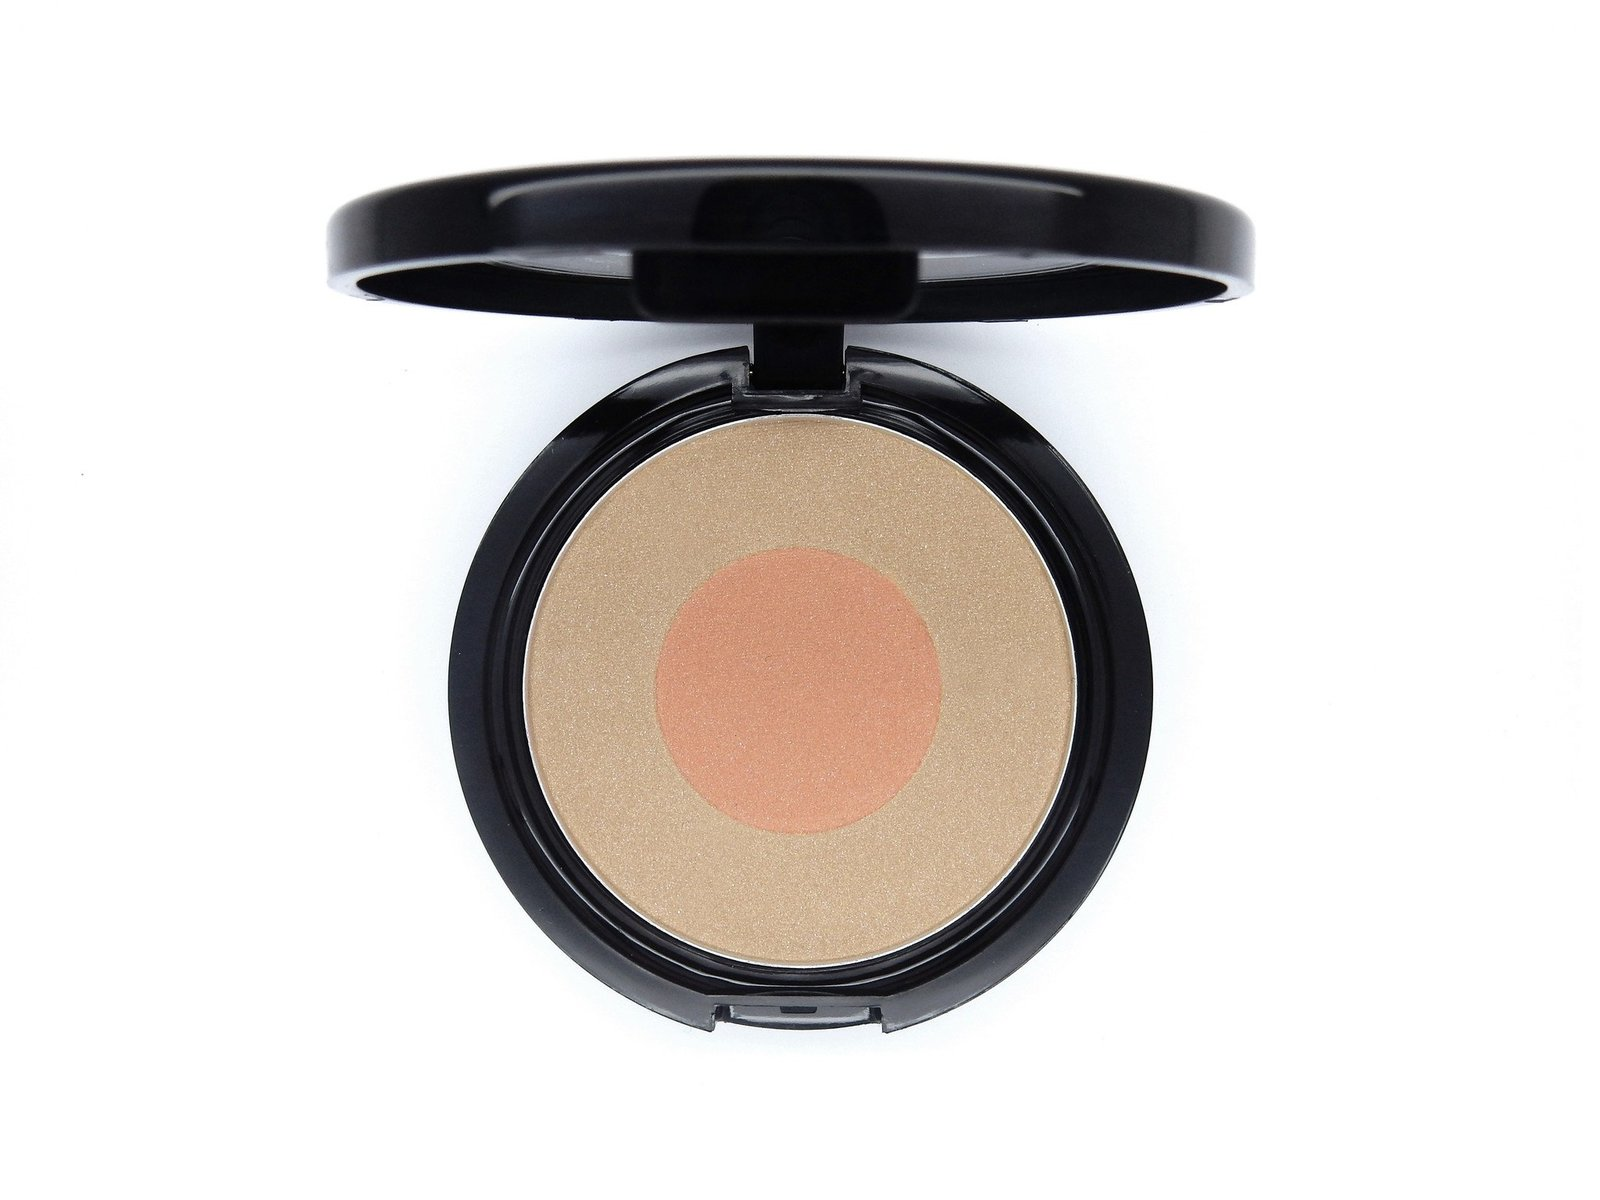 W7 Double Bubble Blush (Love It) image